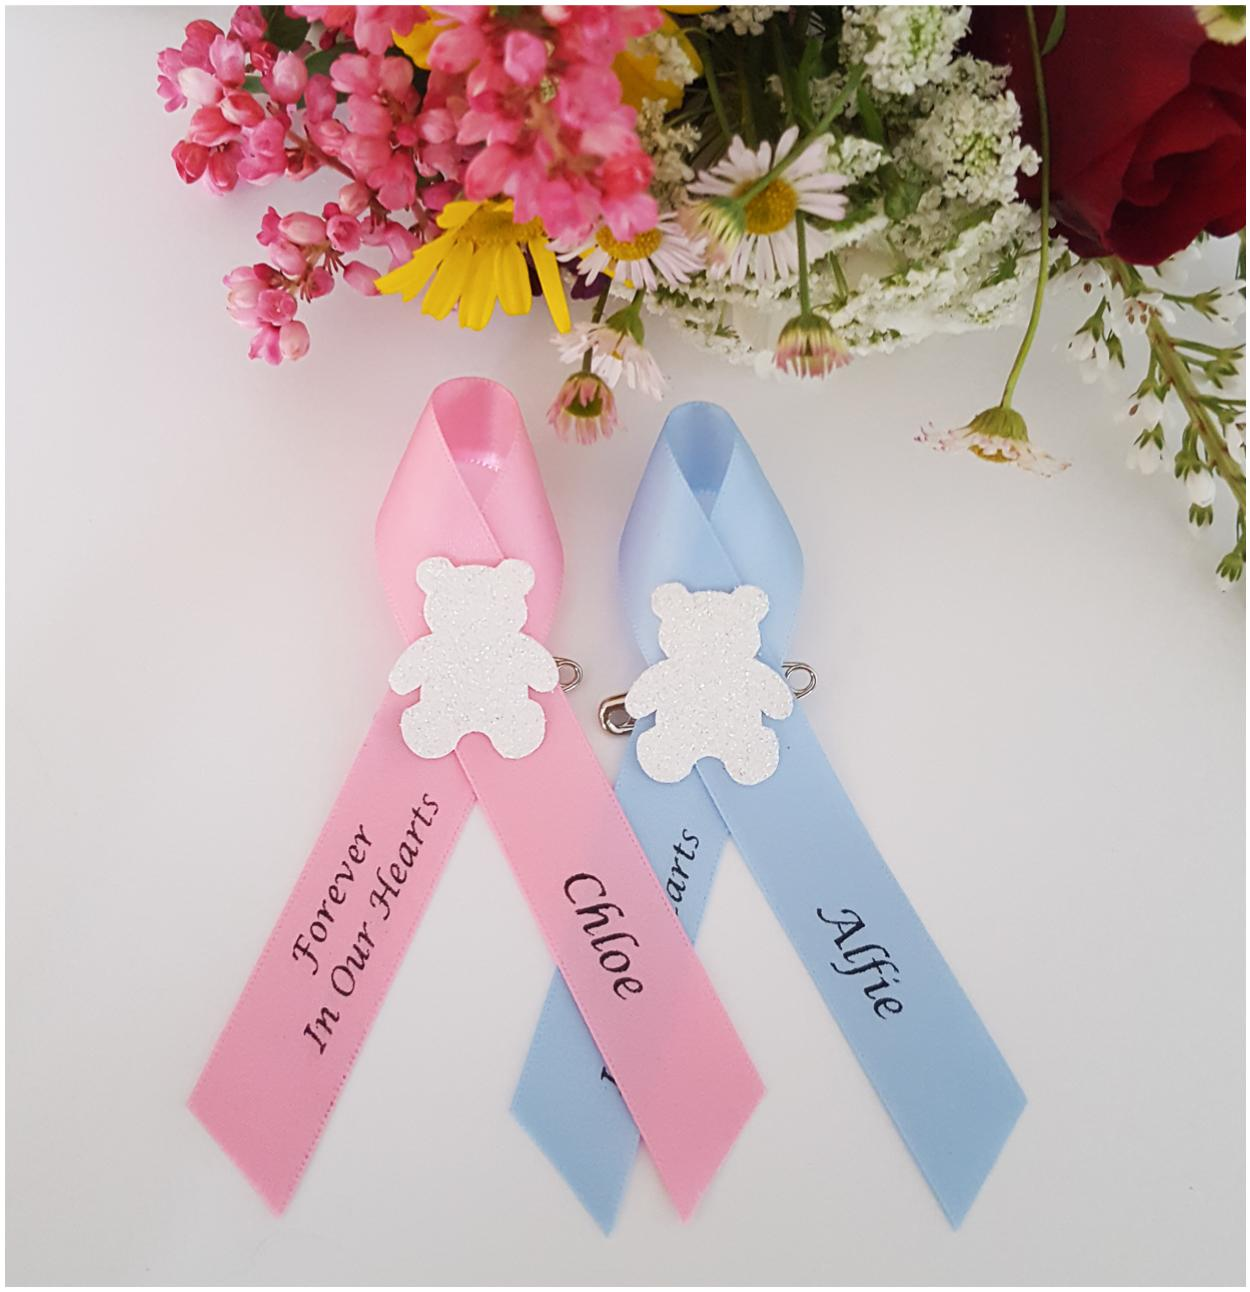 Baby Blue memorial funeral ribbons with teddy